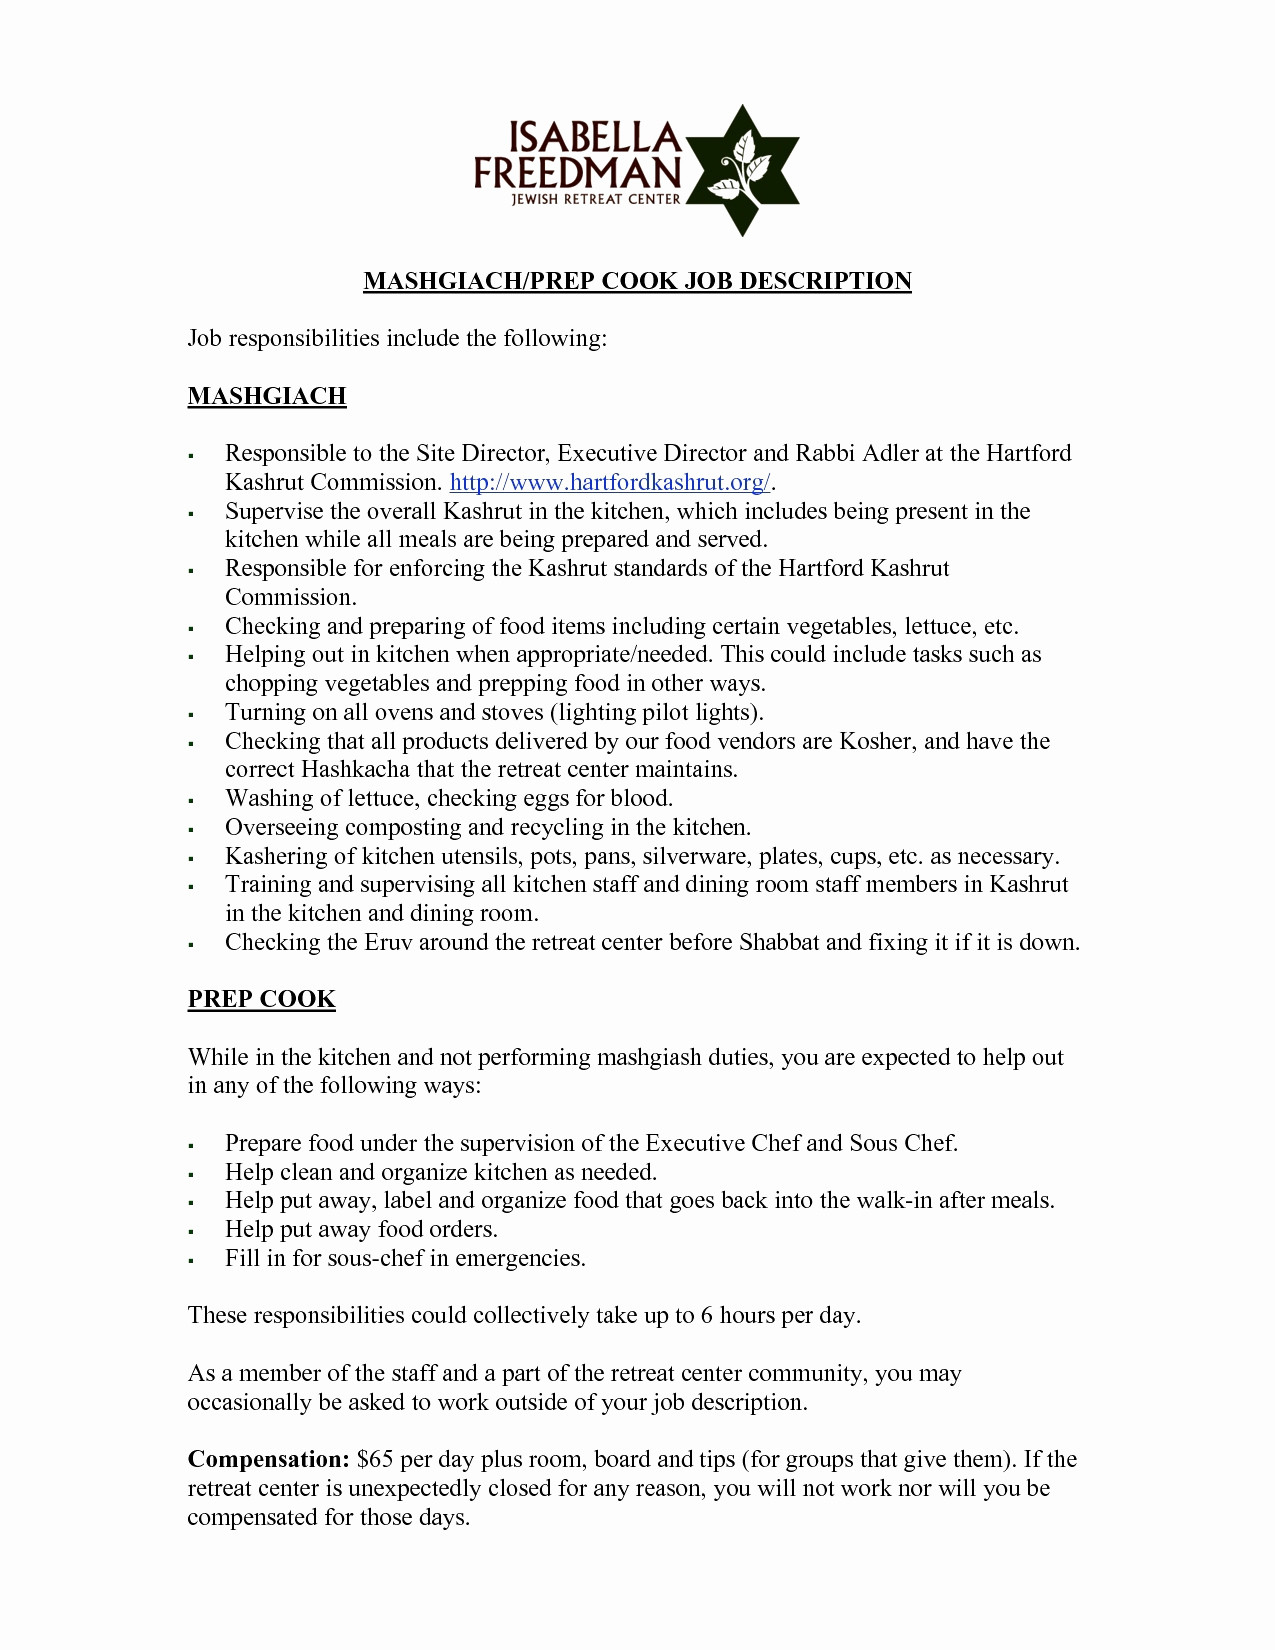 Professional Resume and Cover Letter Template - Professional Resume Templates Reference Resume and Cover Letter